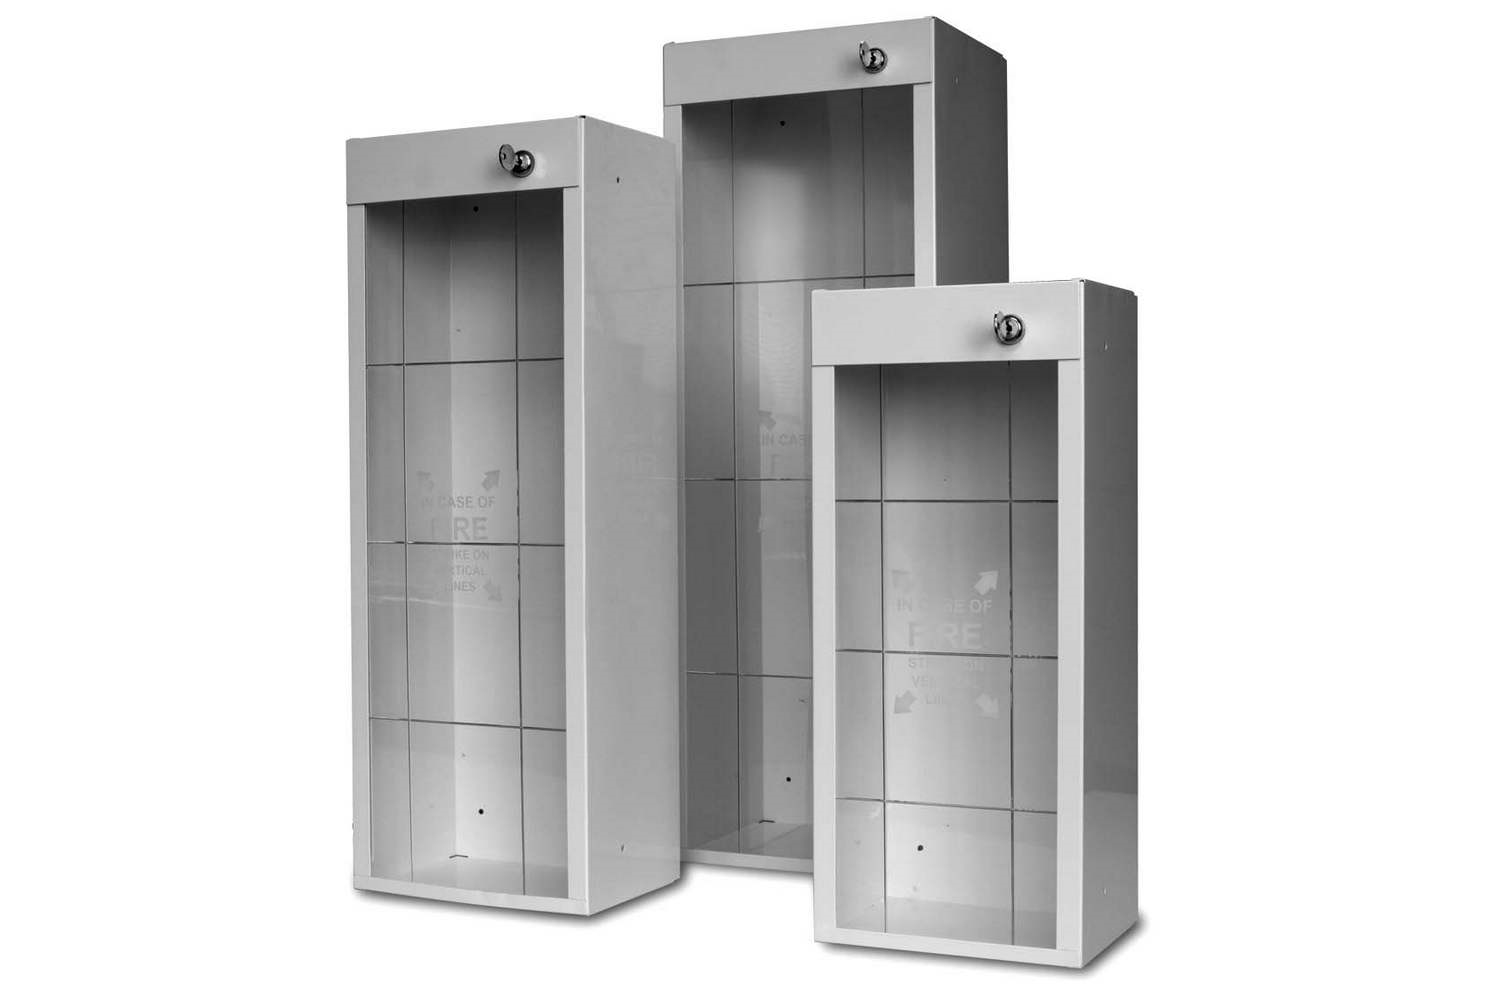 pyro-chem tyco surface mount fire extinguisher cabinets